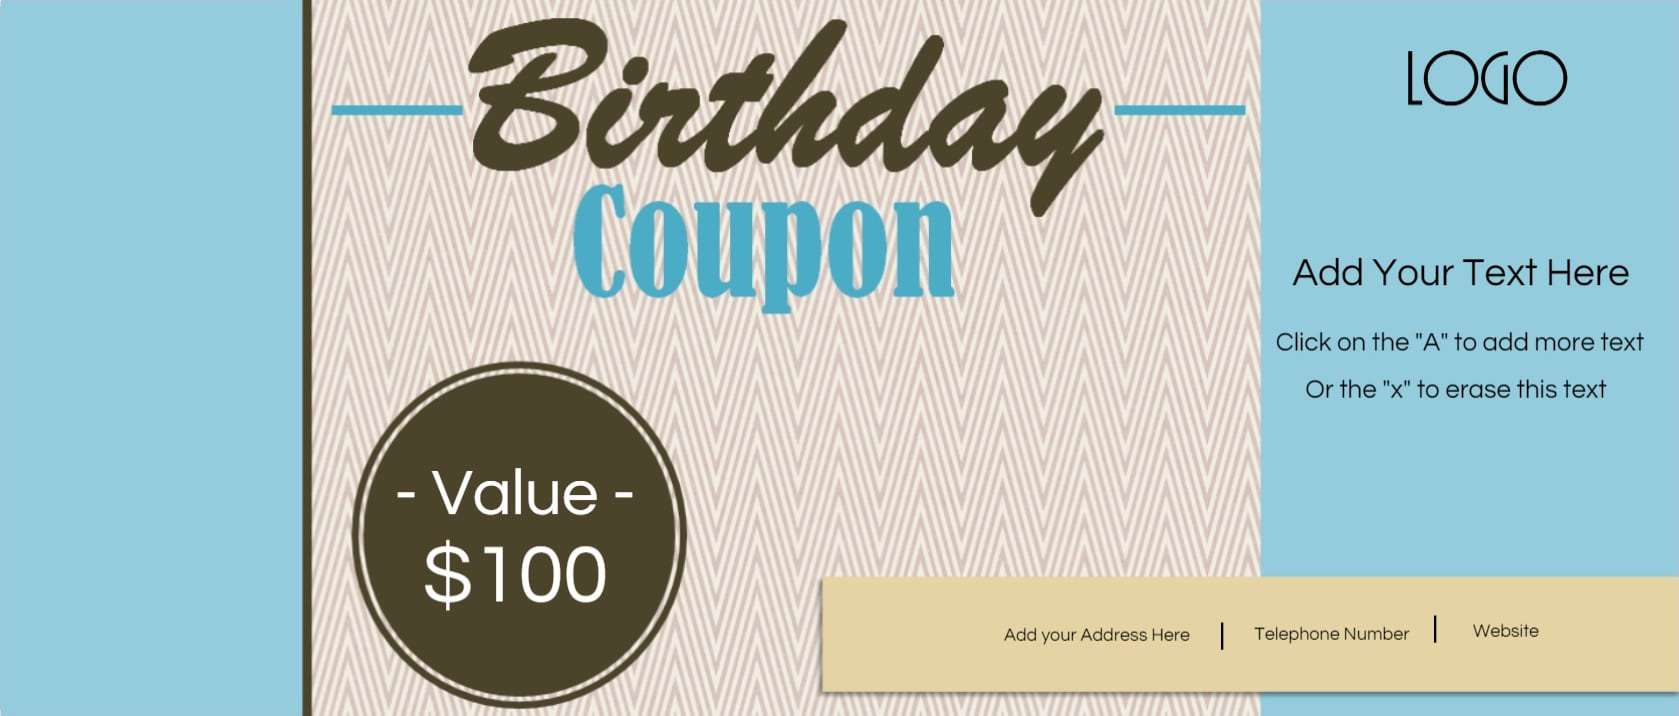 Free Custom Birthday Coupons - Customize Online & Print at Home